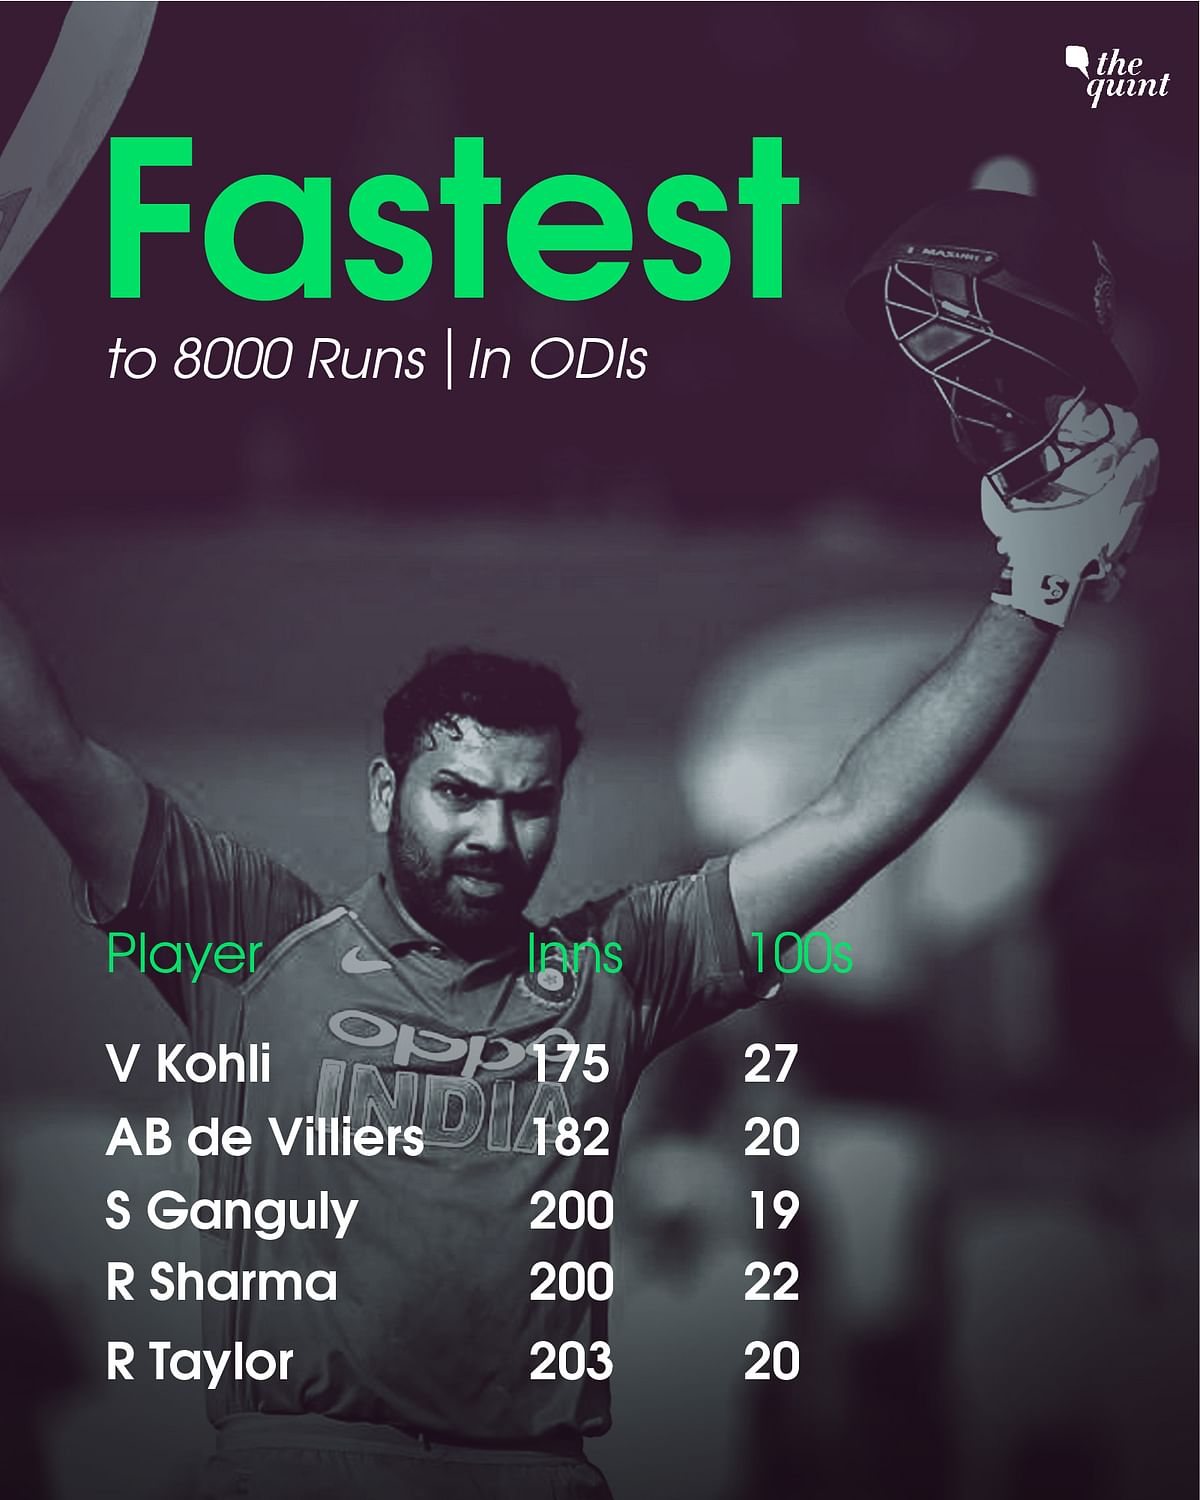 8000 Runs For Rohit, But India Lose 1st ODI Home Series Since 2015